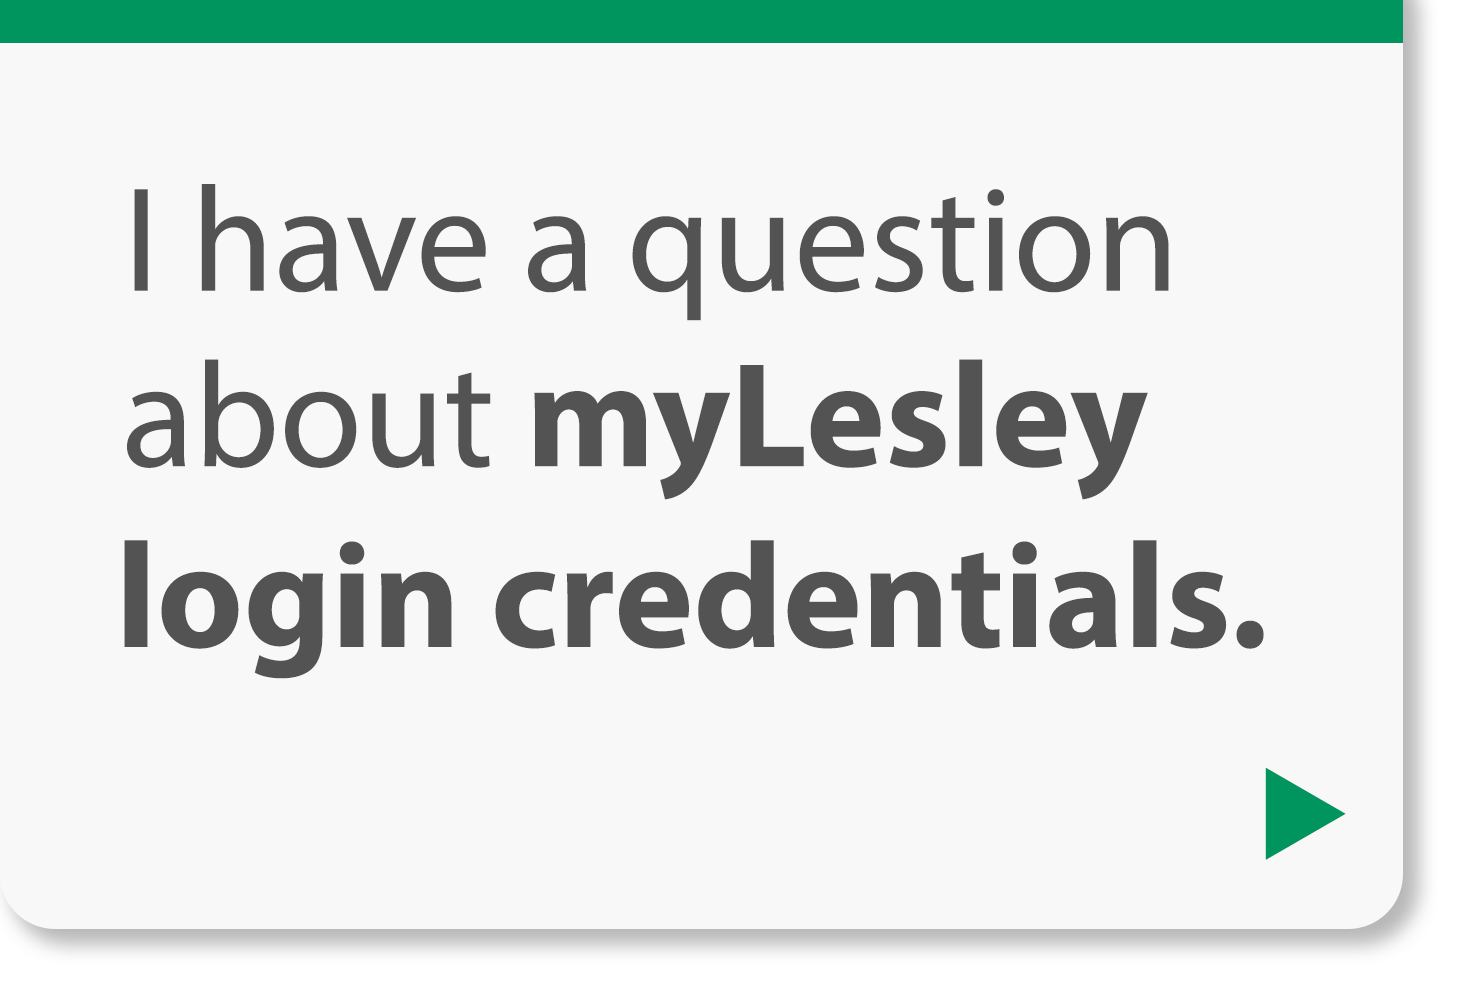 I have a question about myLesley login credentials